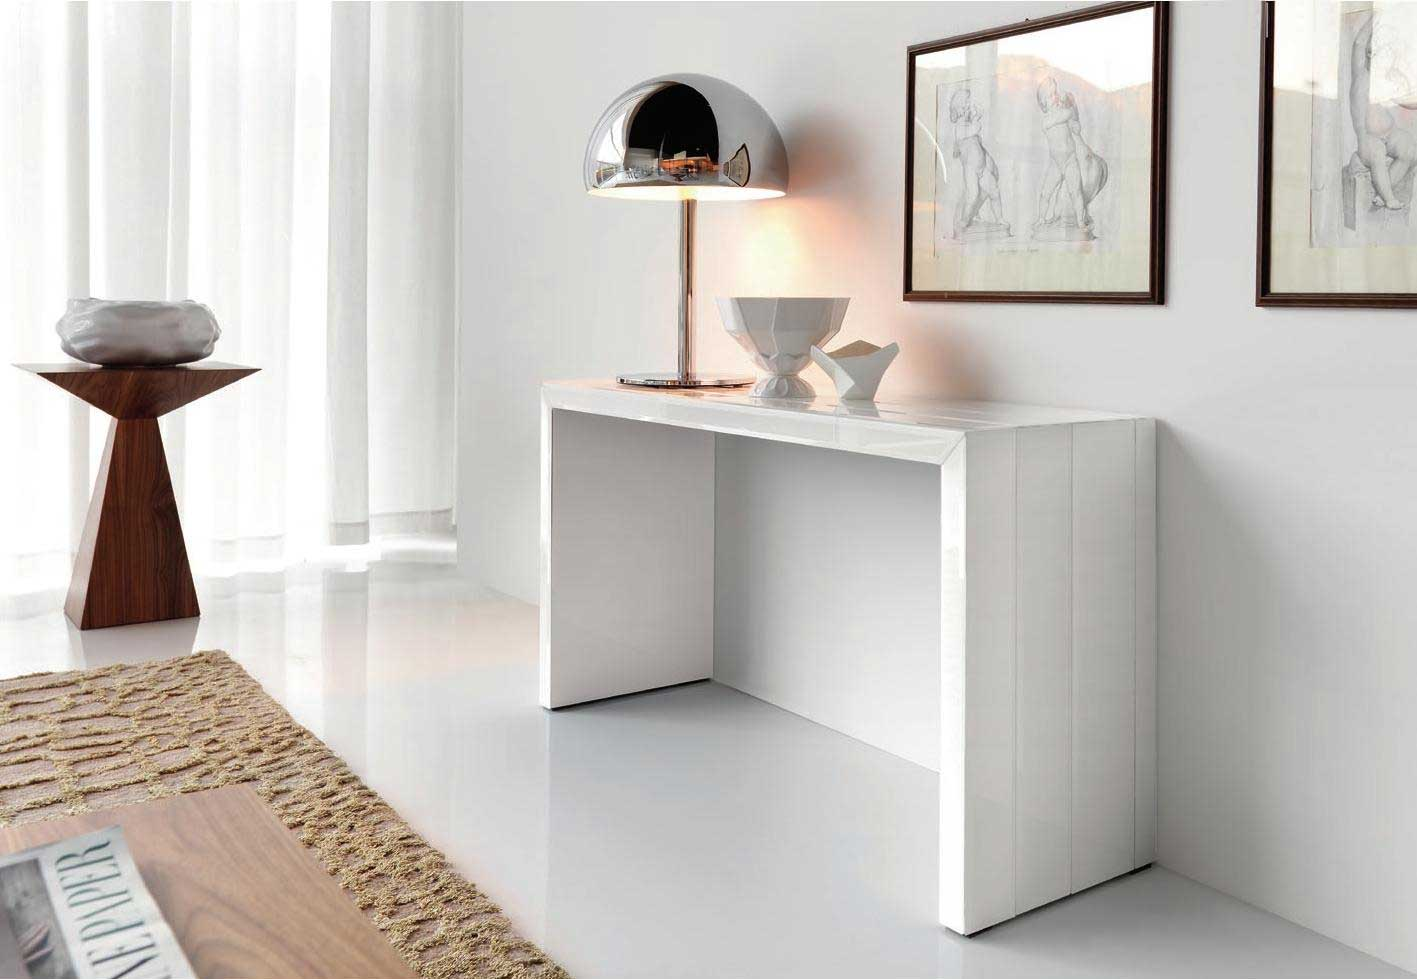 Modern slim console table in white decorated with stylish table lamp and pictures on wall decoration